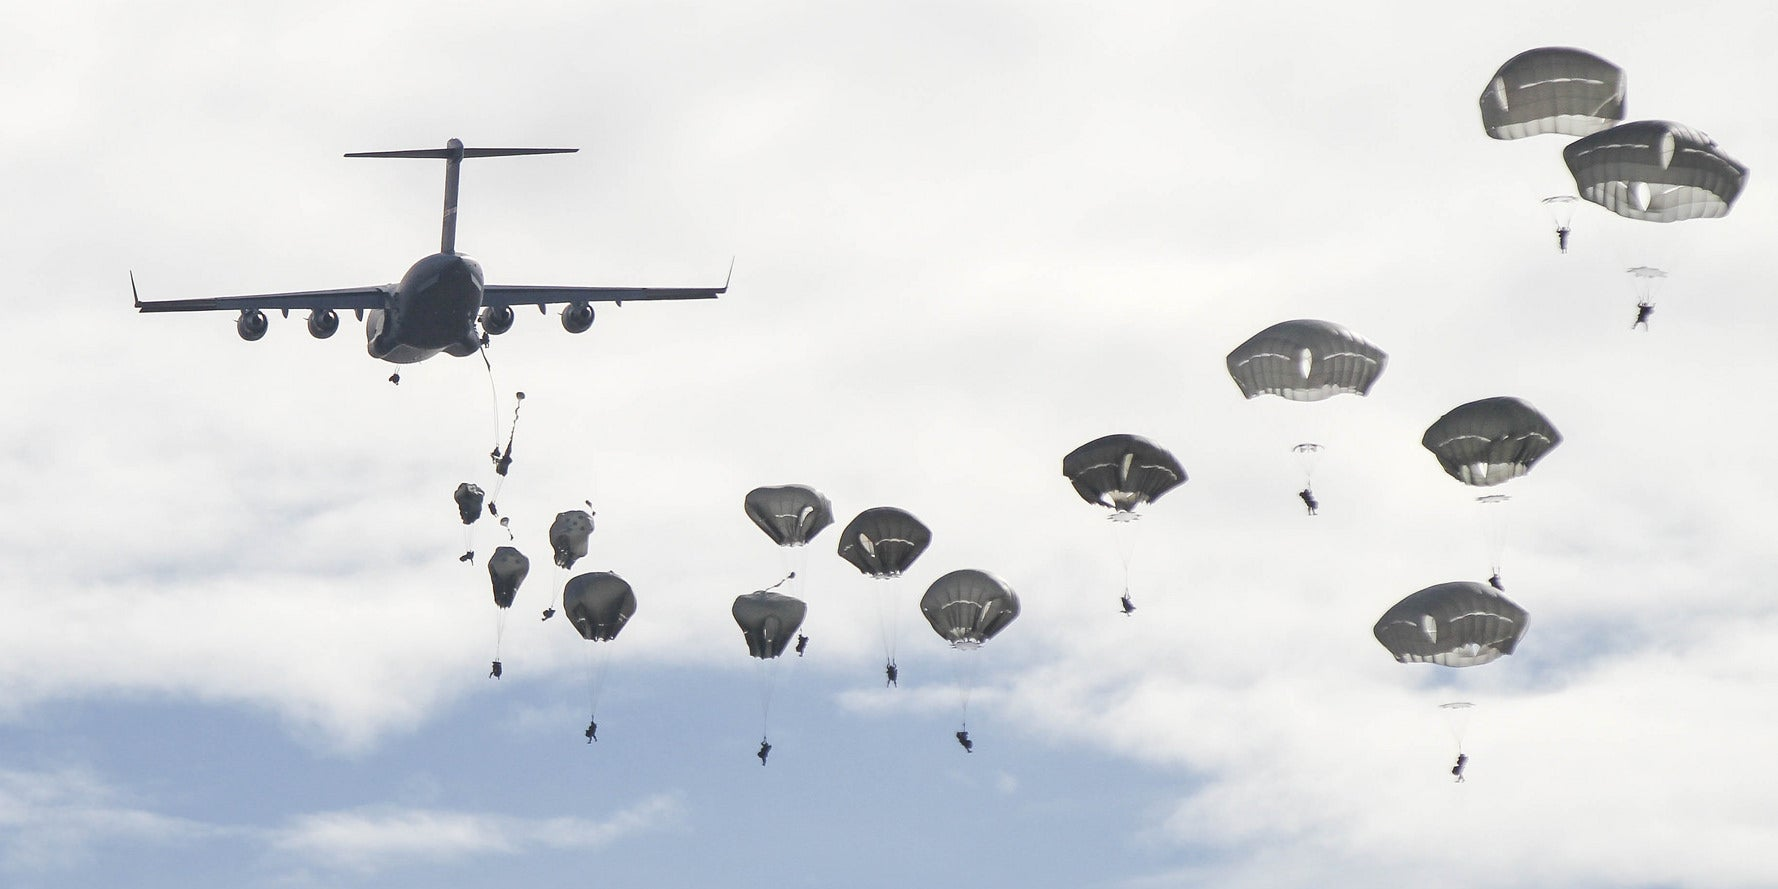 These Paratroopers Look So Peaceful While They're in the Air